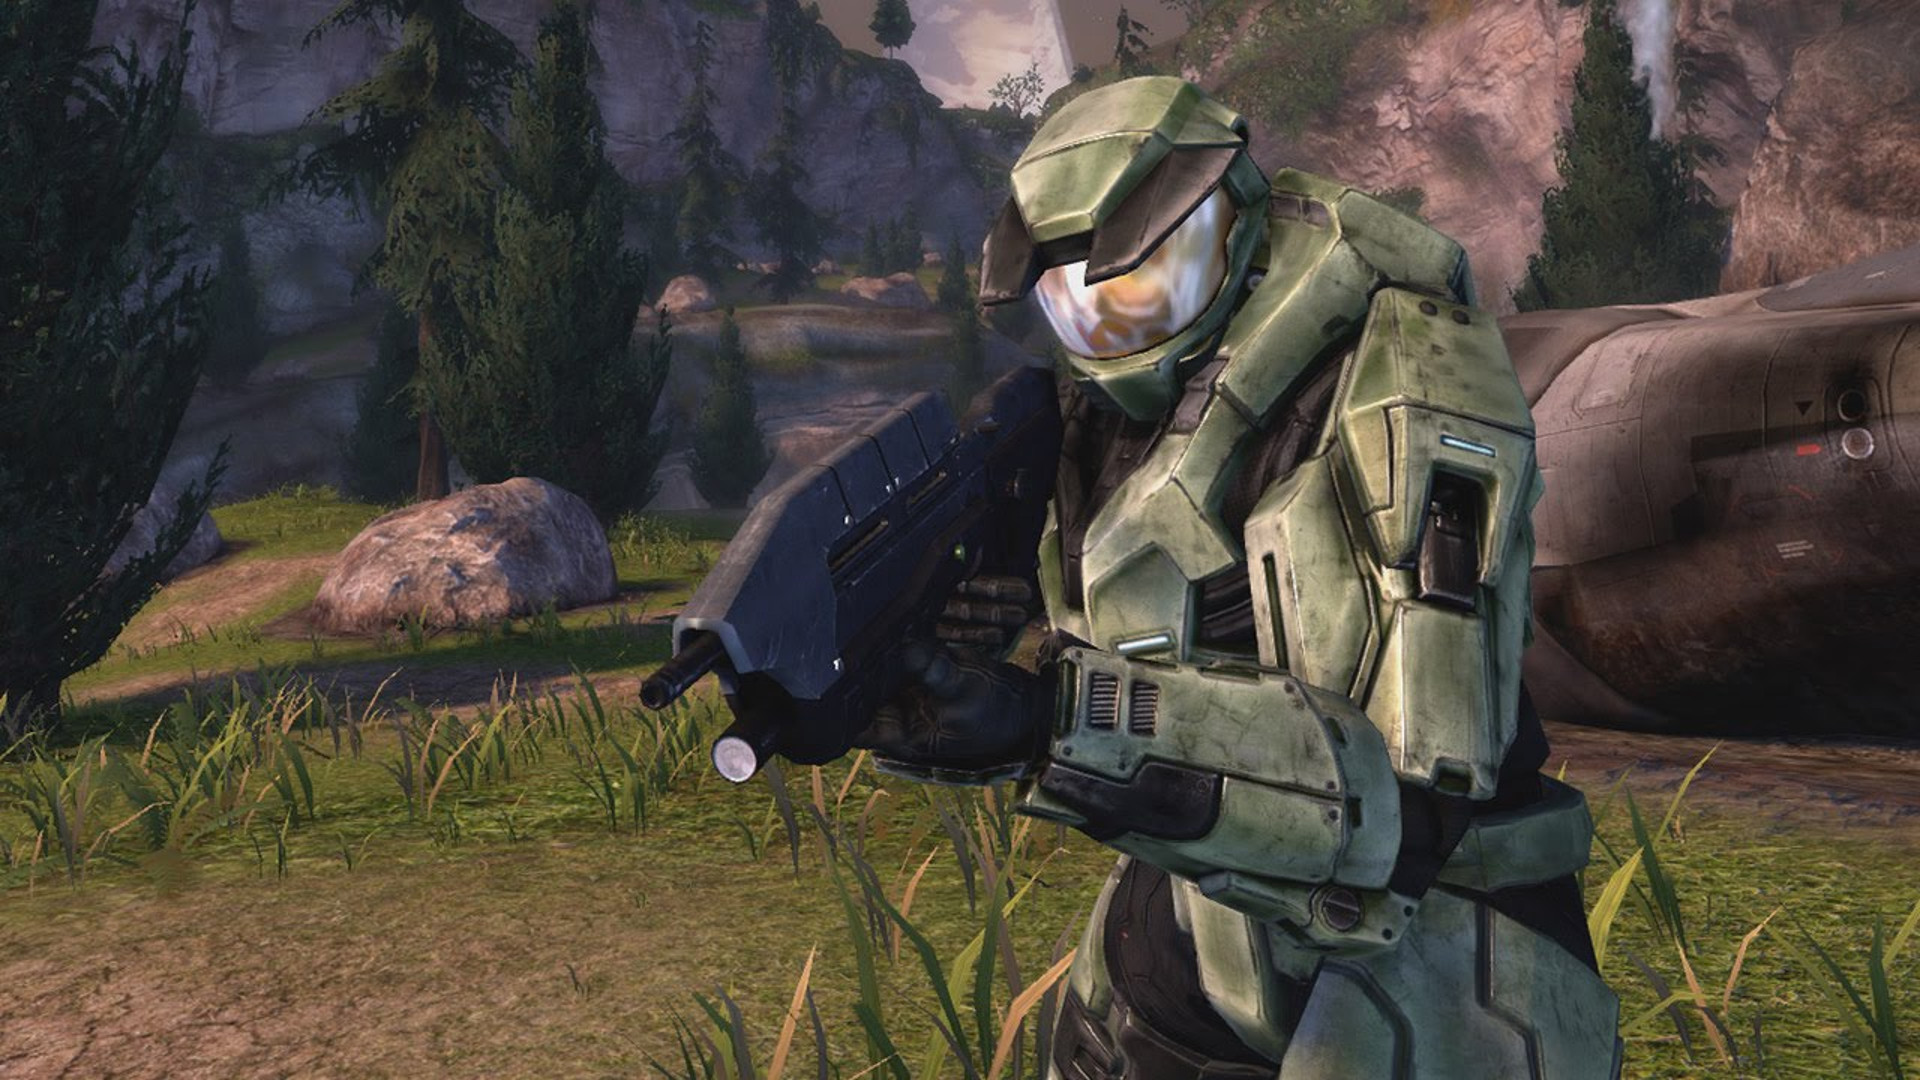 Halo: CE will have classic multiplayer sound on PC